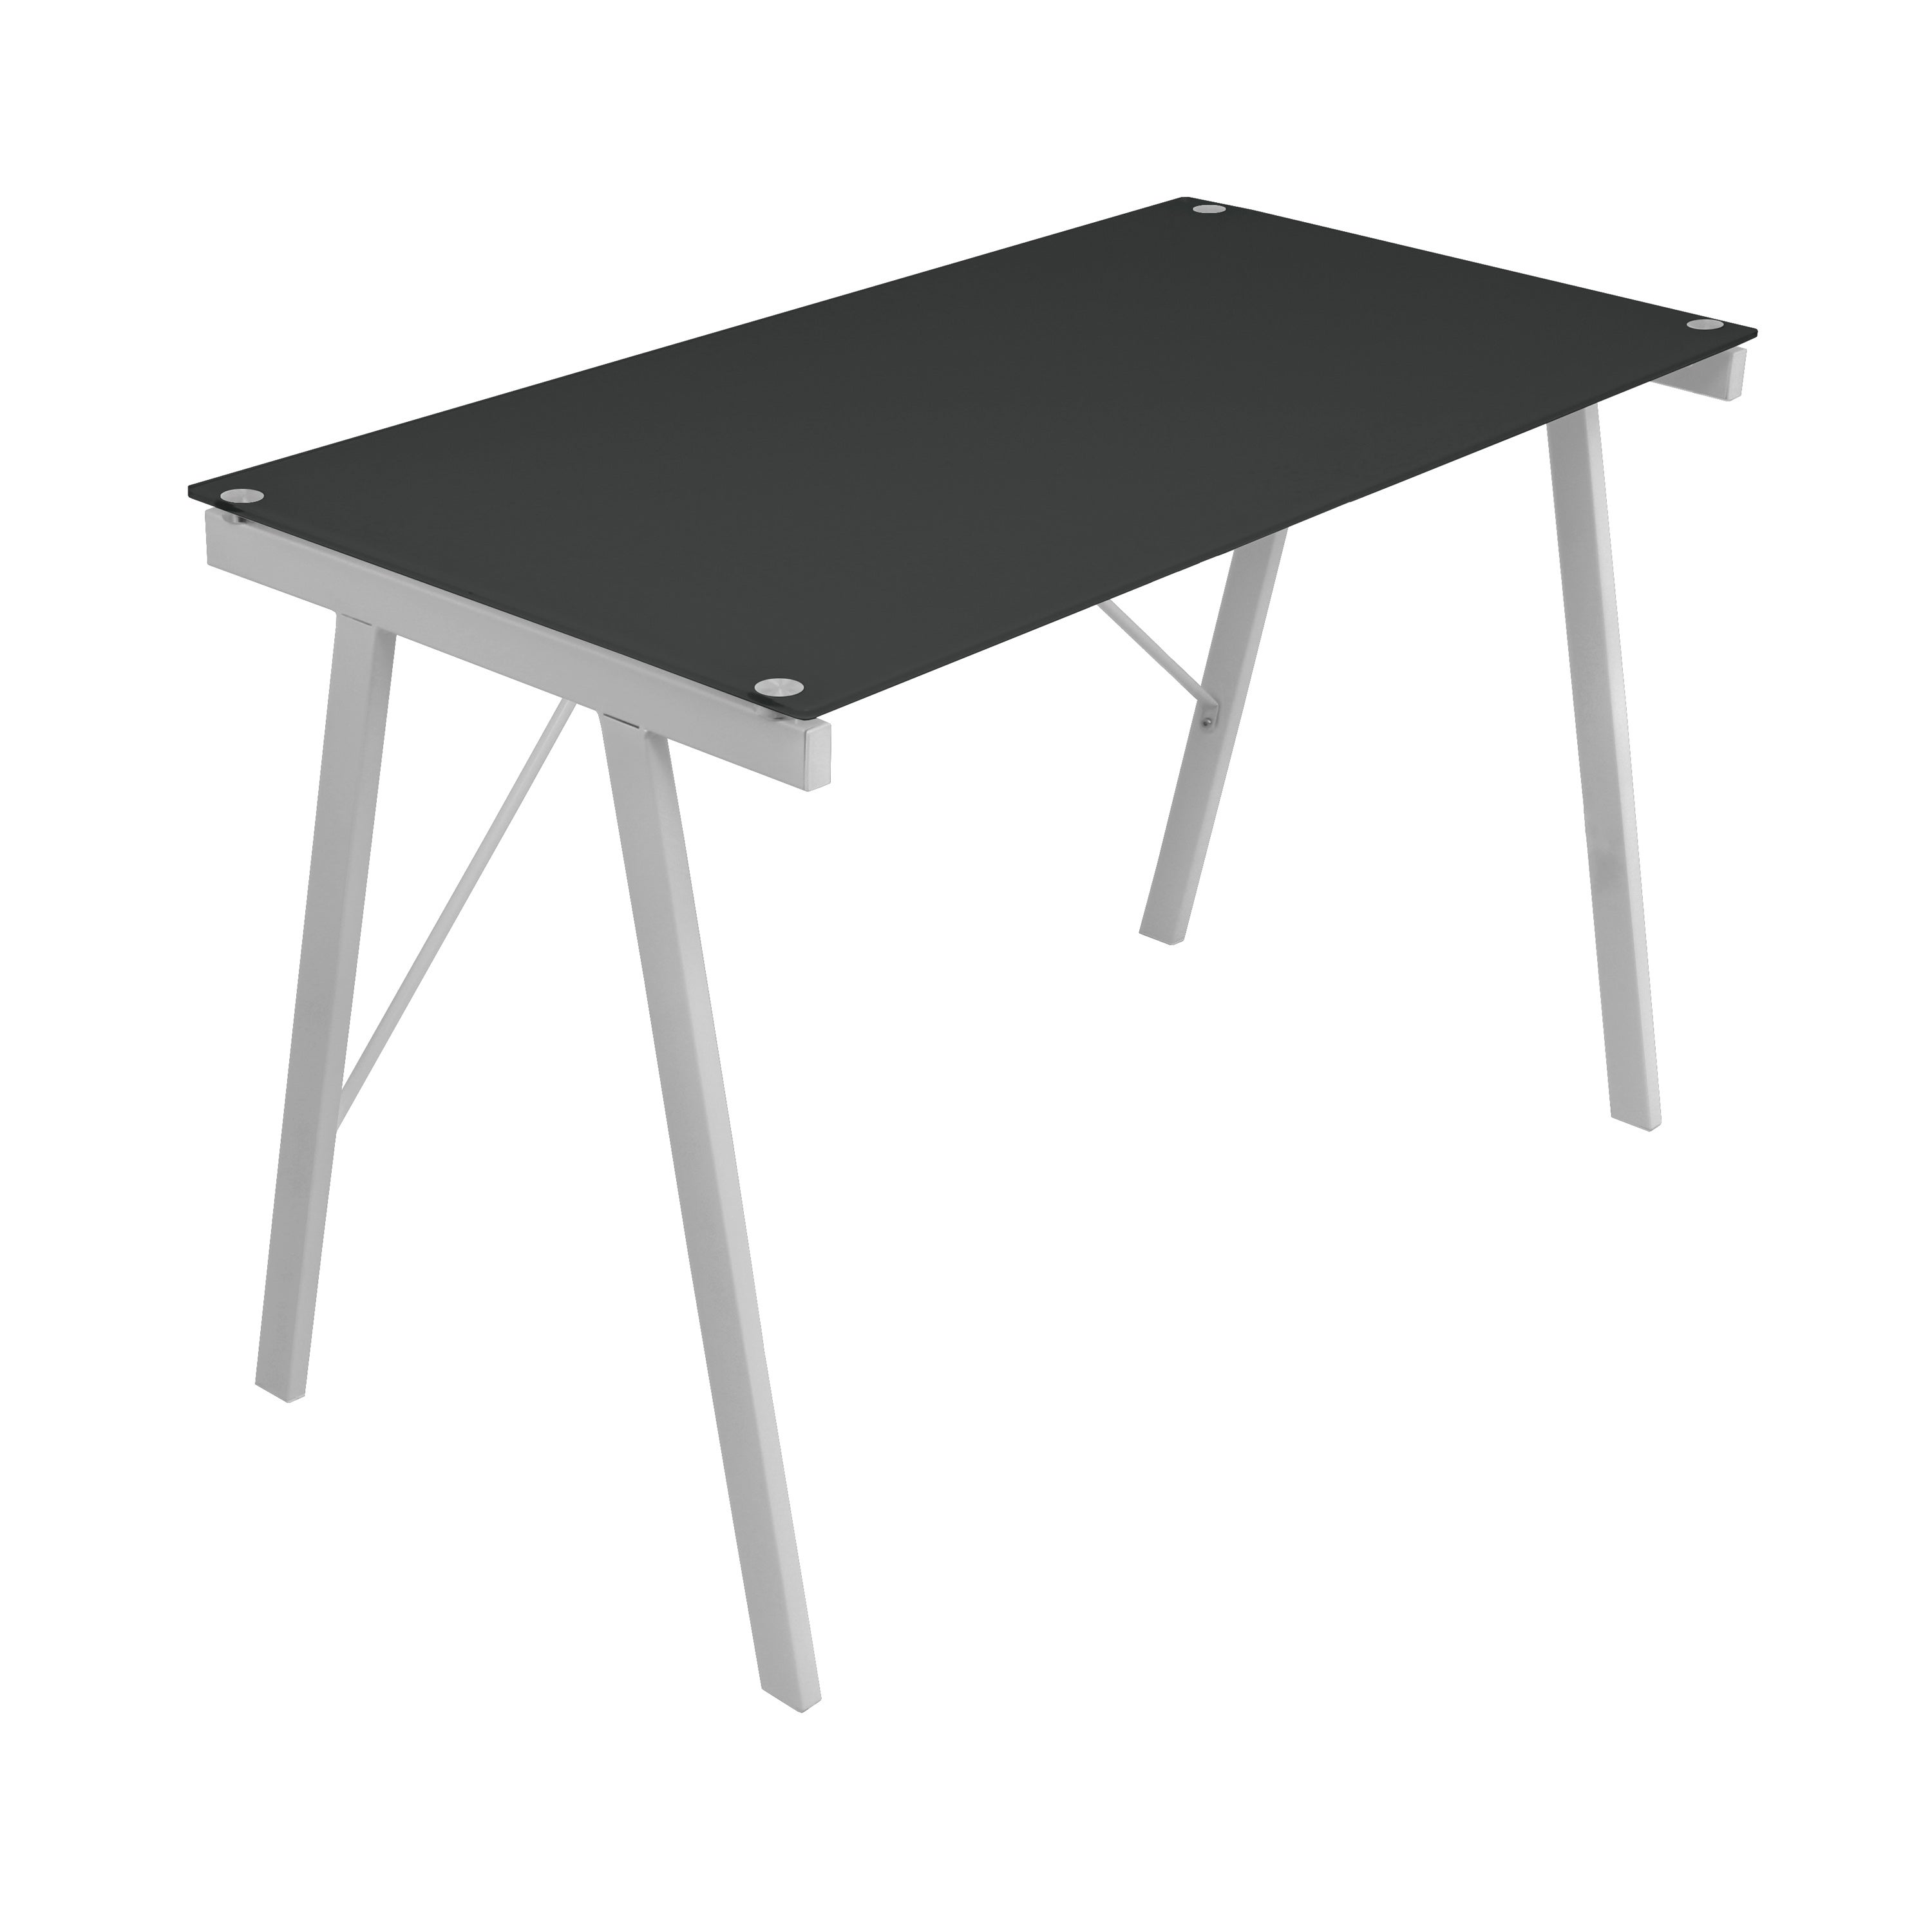 Exponent Black Office Desk/ Drafting Table